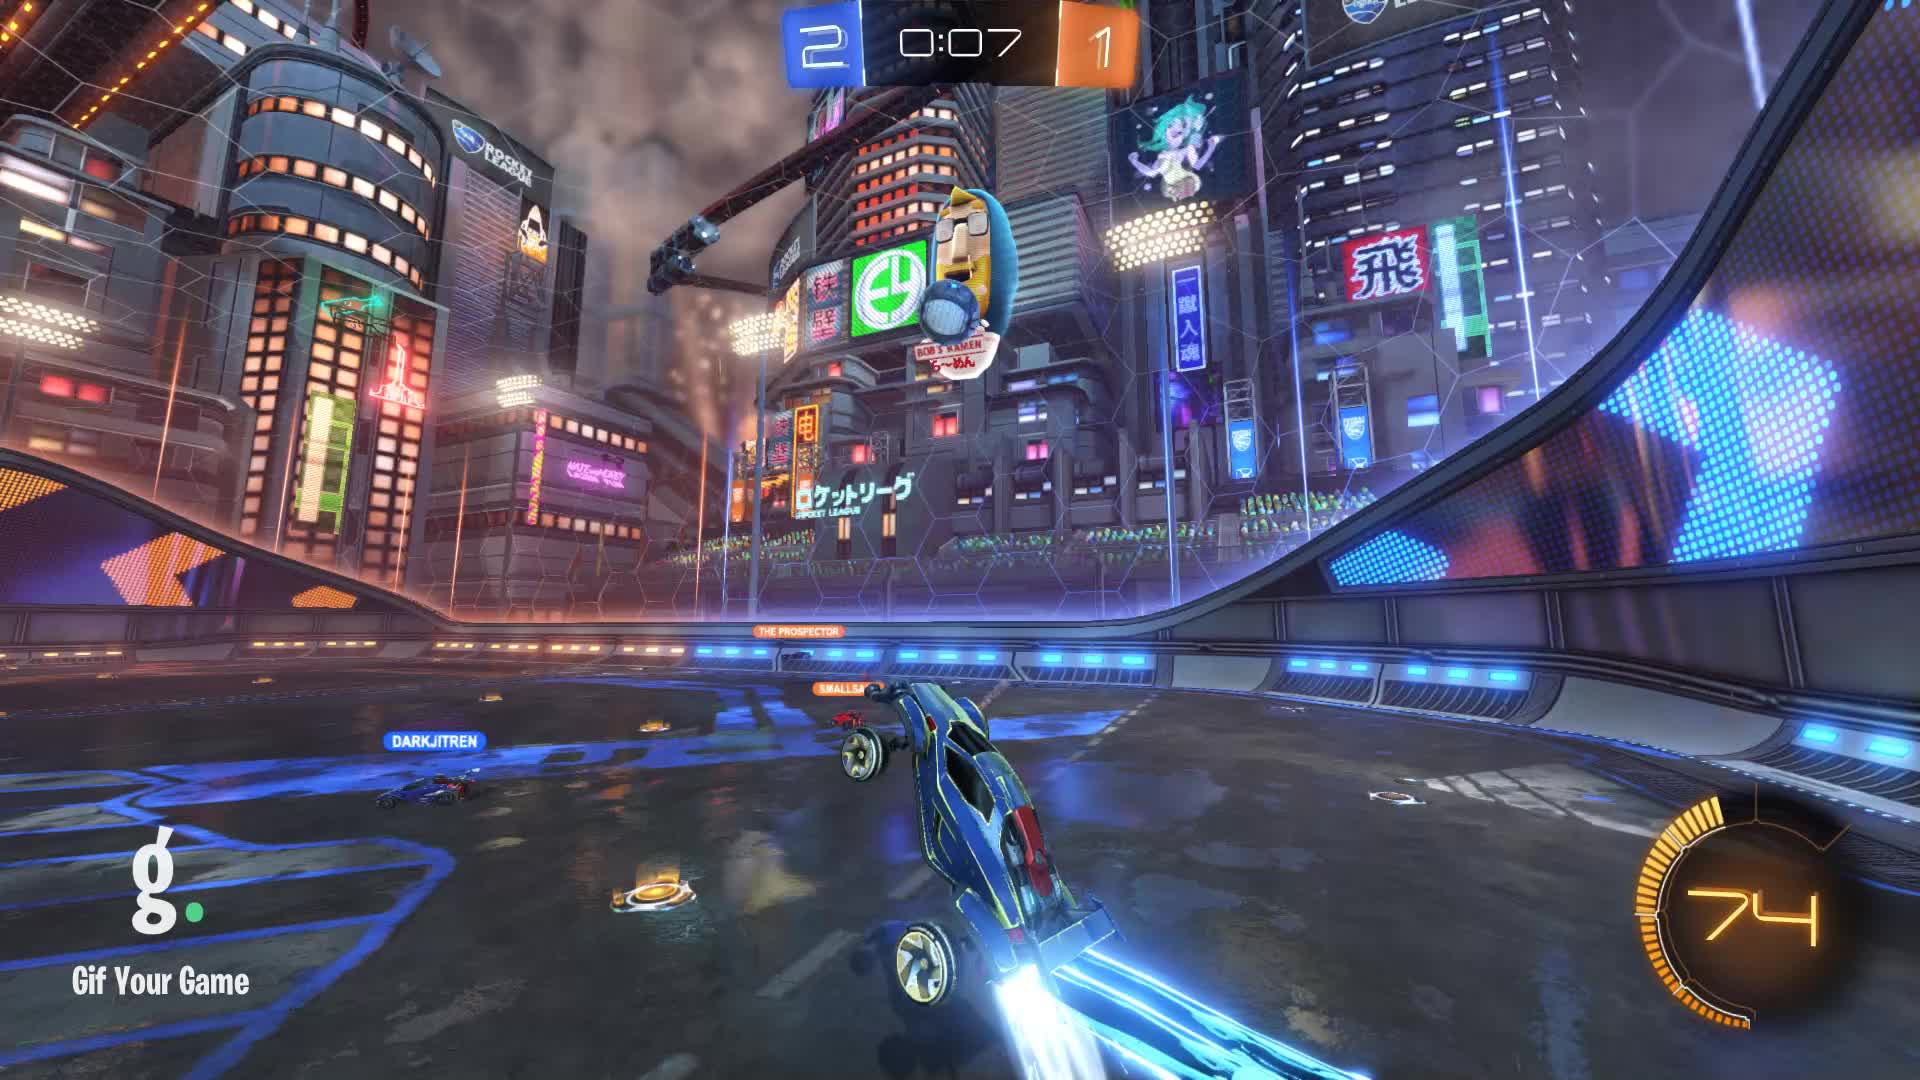 Gif Your Game, GifYourGame, Goal, ItWas...Justified, Rocket League, RocketLeague, Goal 4: ItWas...Justified GIFs